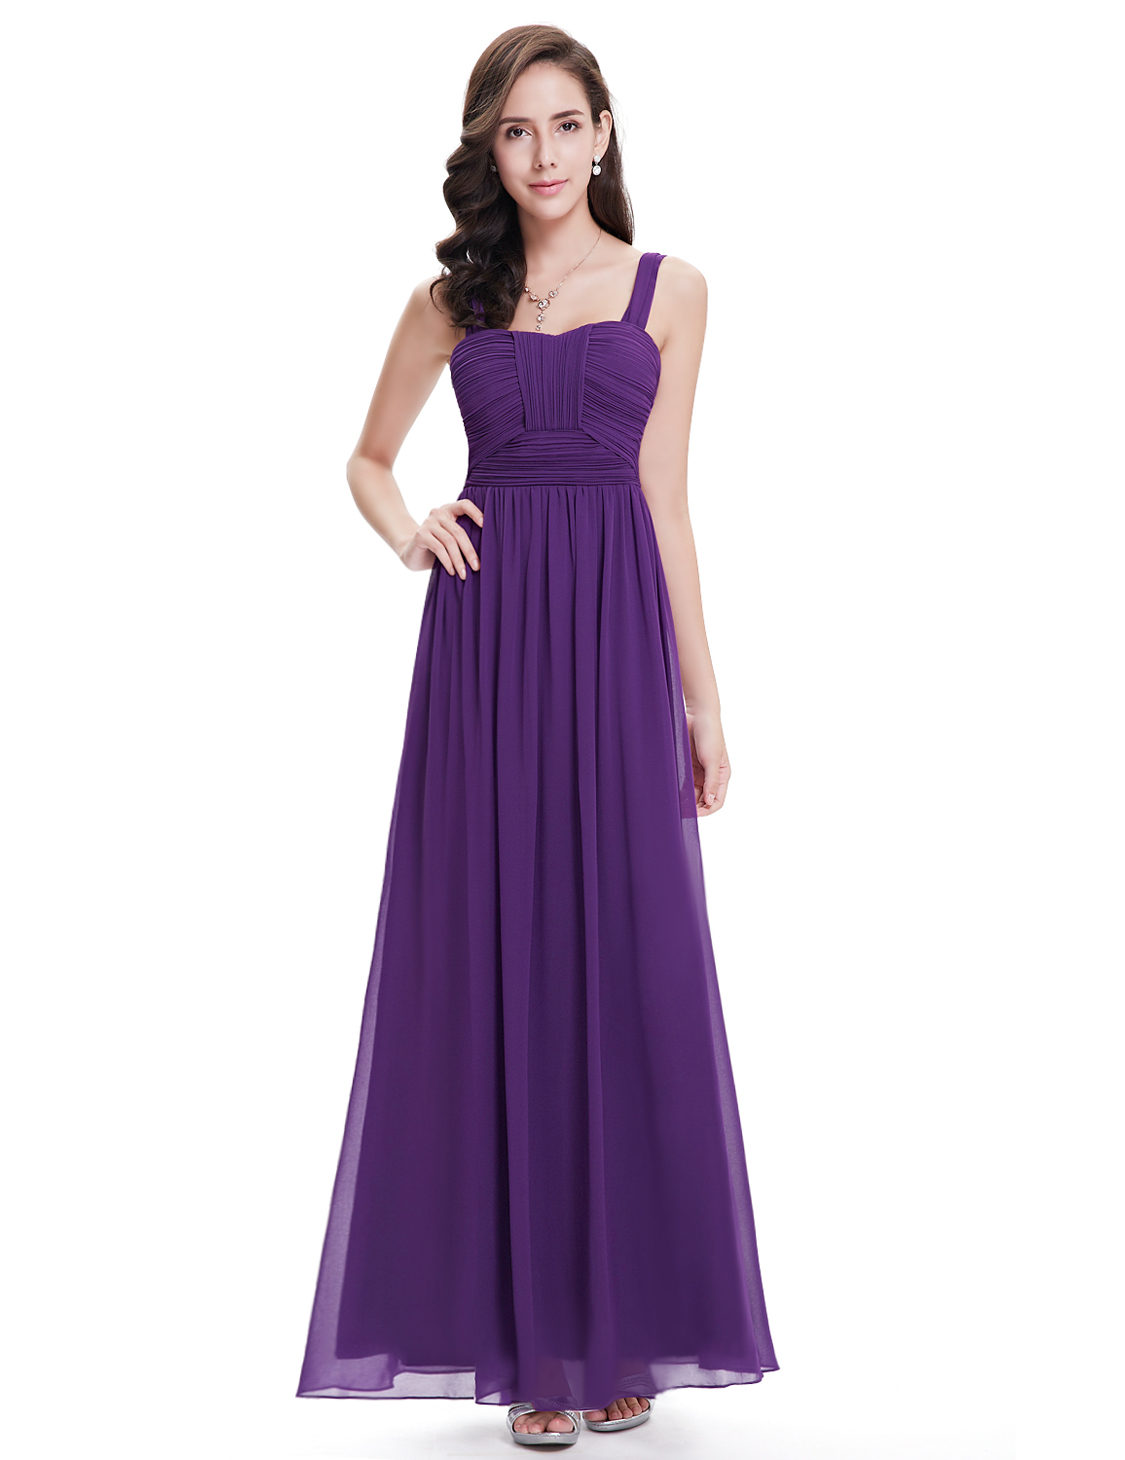 Long purple bridesmaid party prom formal dress for women for 34 wedding dresses that should have never existed